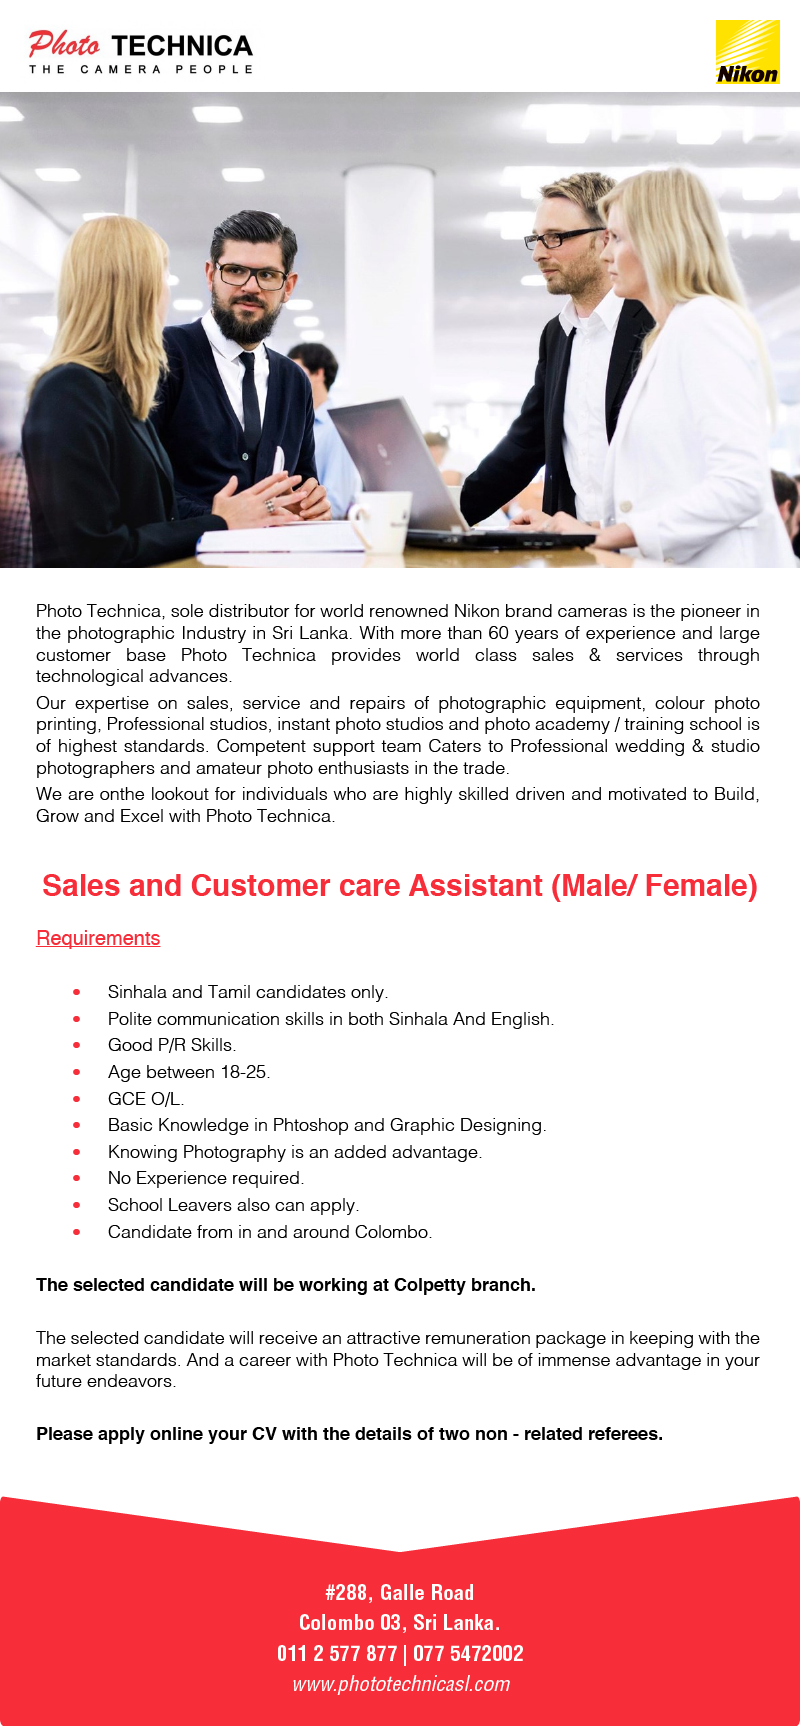 Sales and Customer Care Assistance (Male / Female) 2019